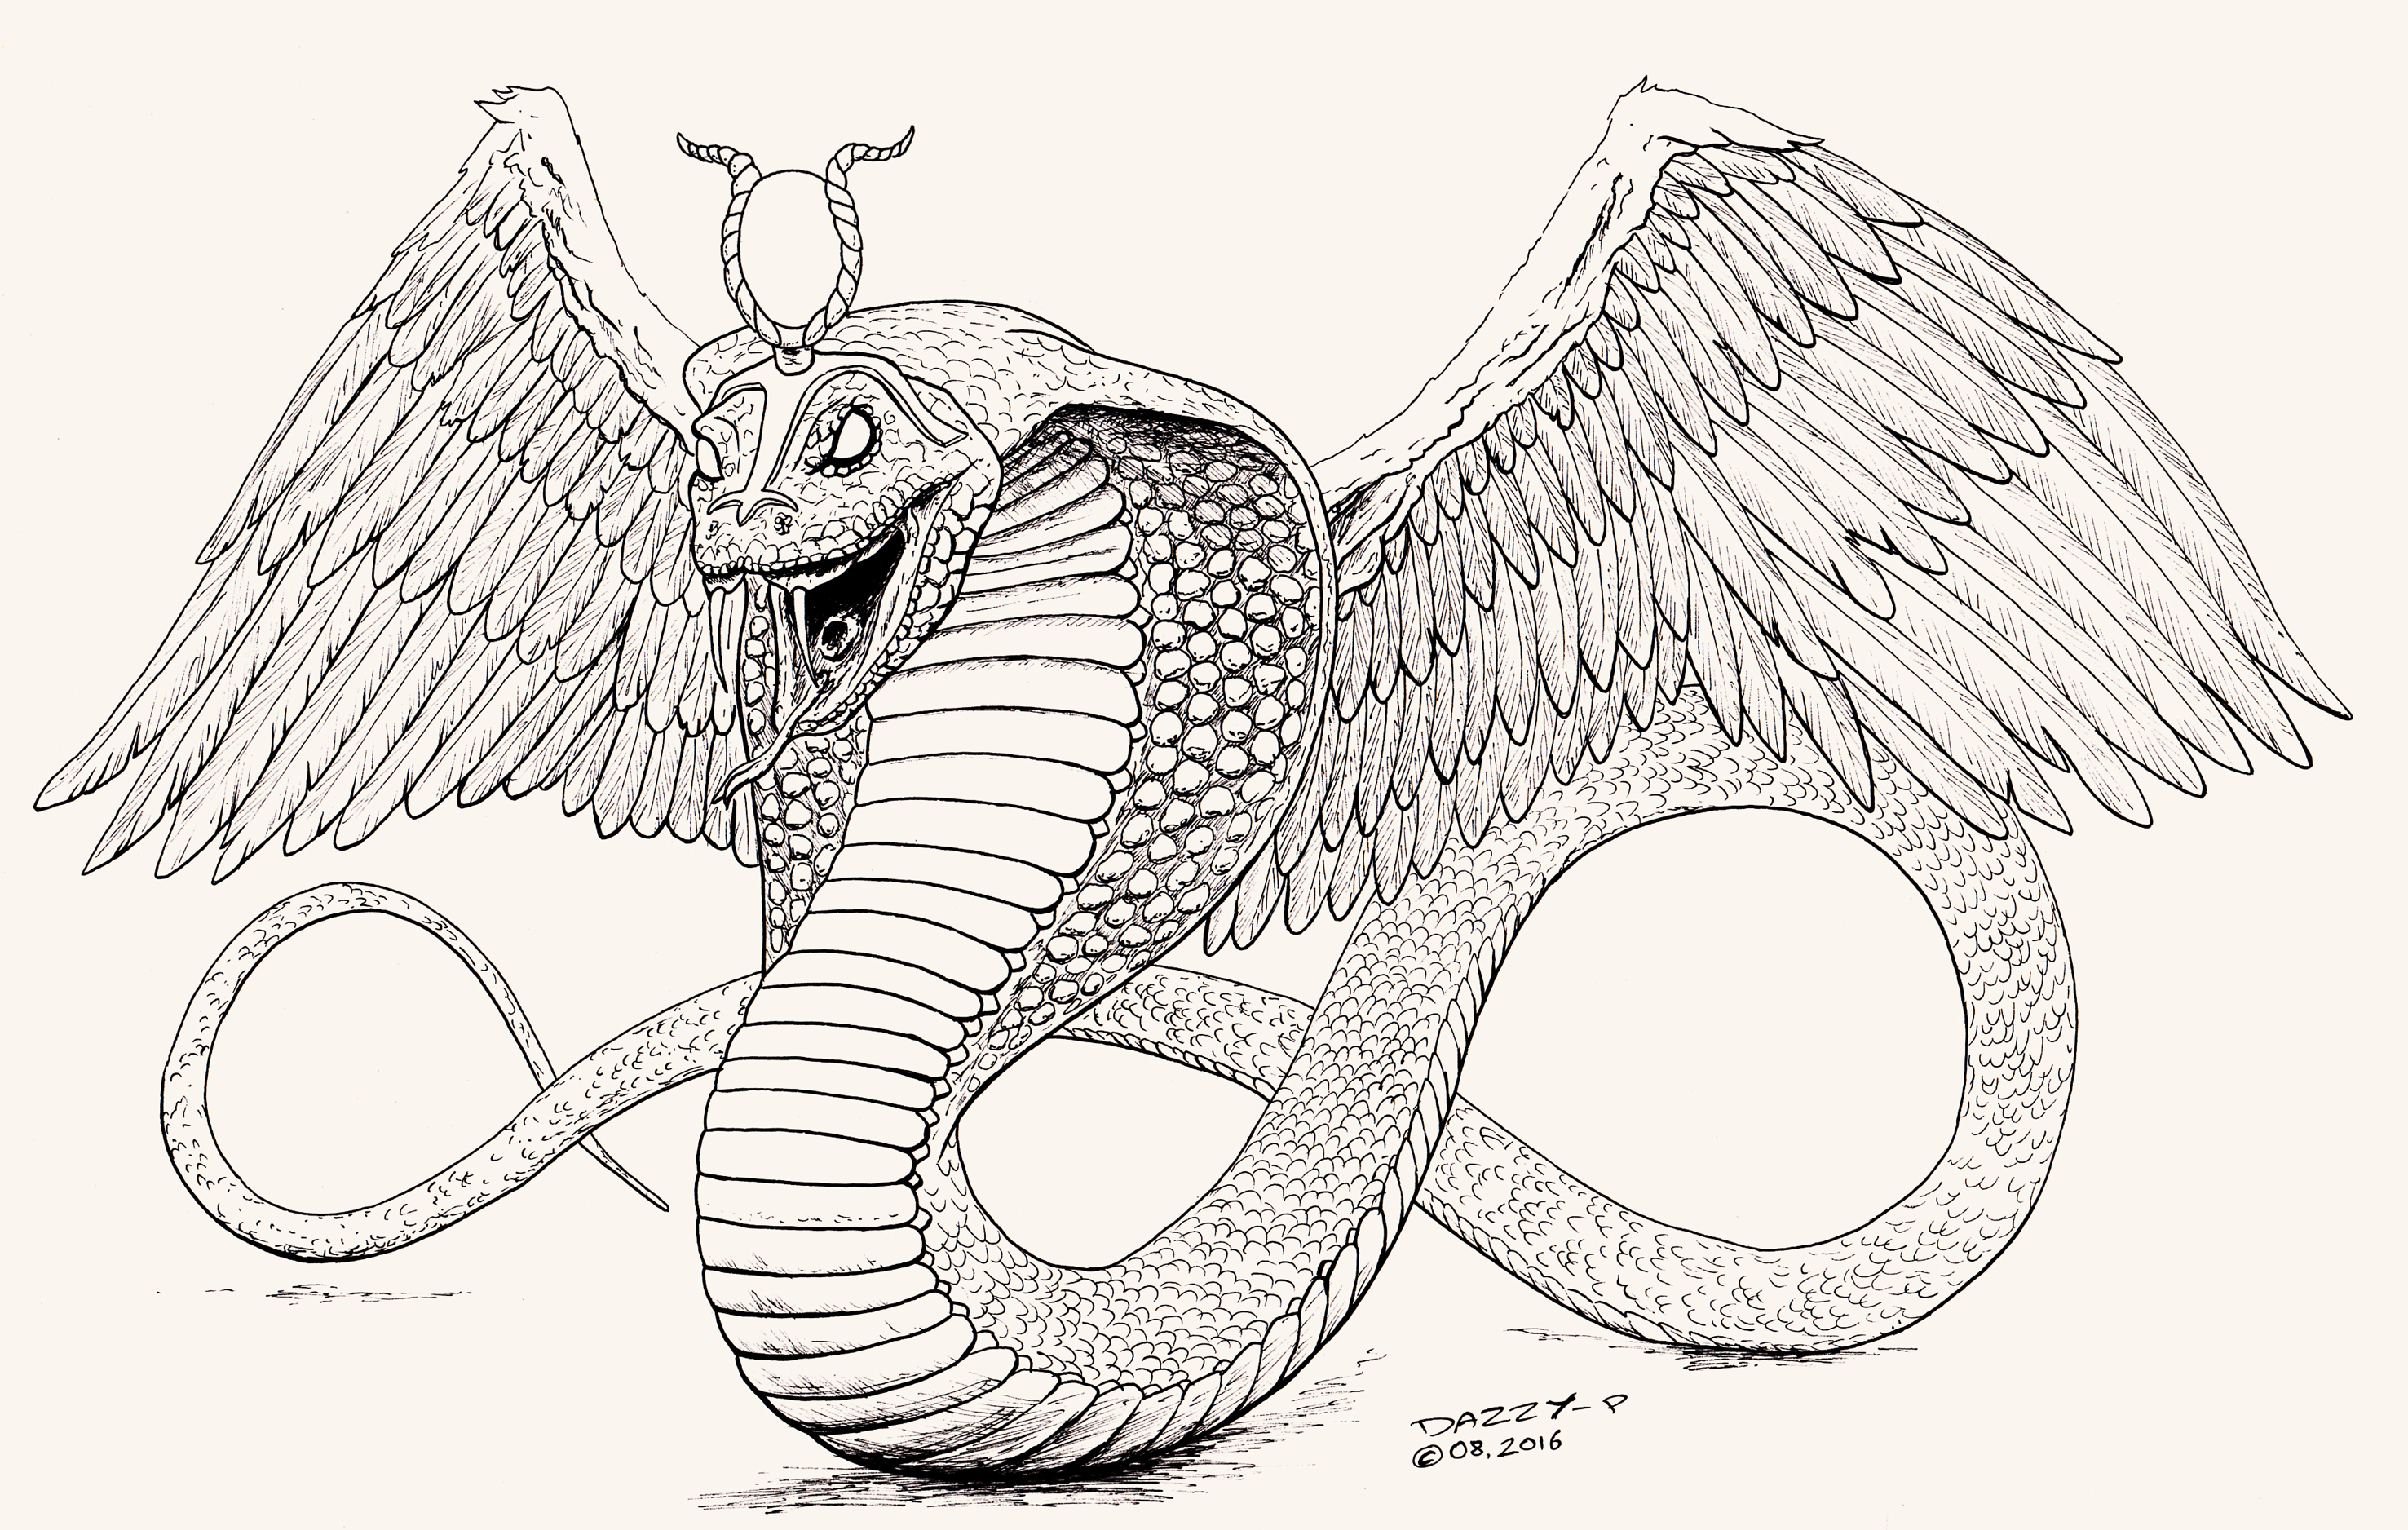 Wadjet (Deity) coloring #2, Download drawings